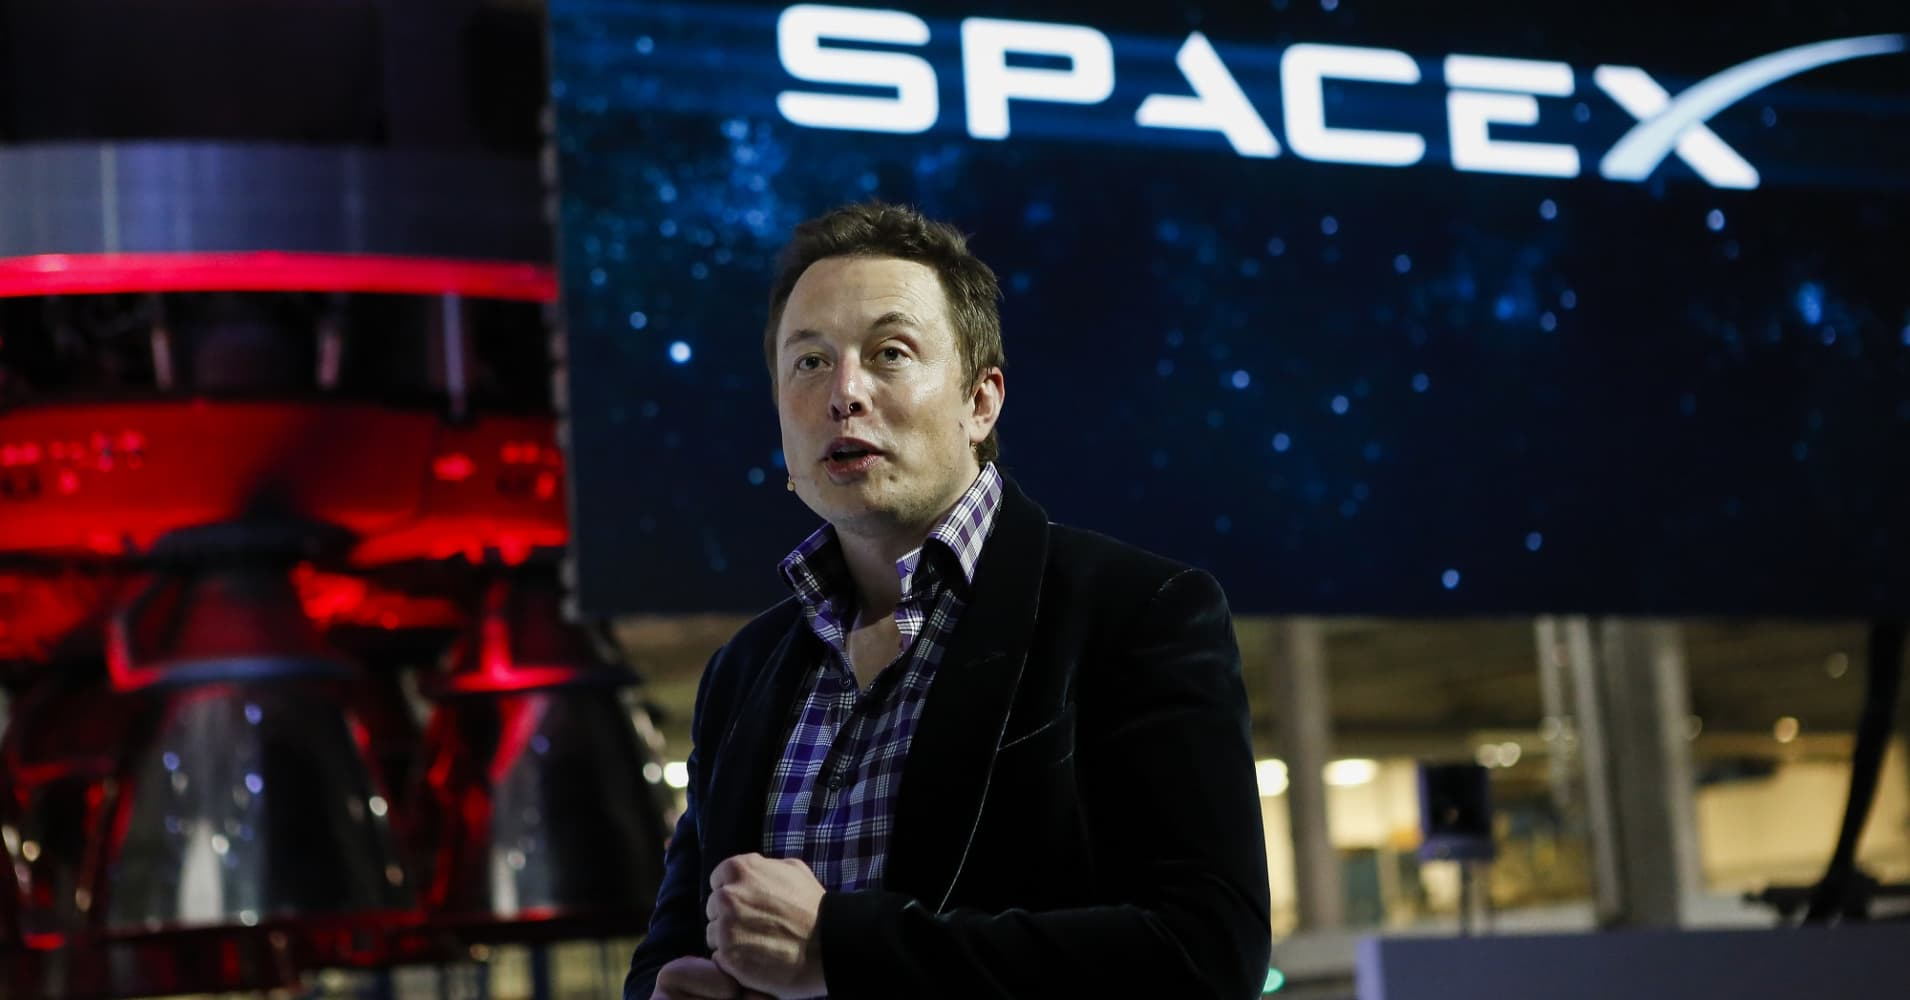 Elon Musk's SpaceX lands another big win in making reusable rockets the future